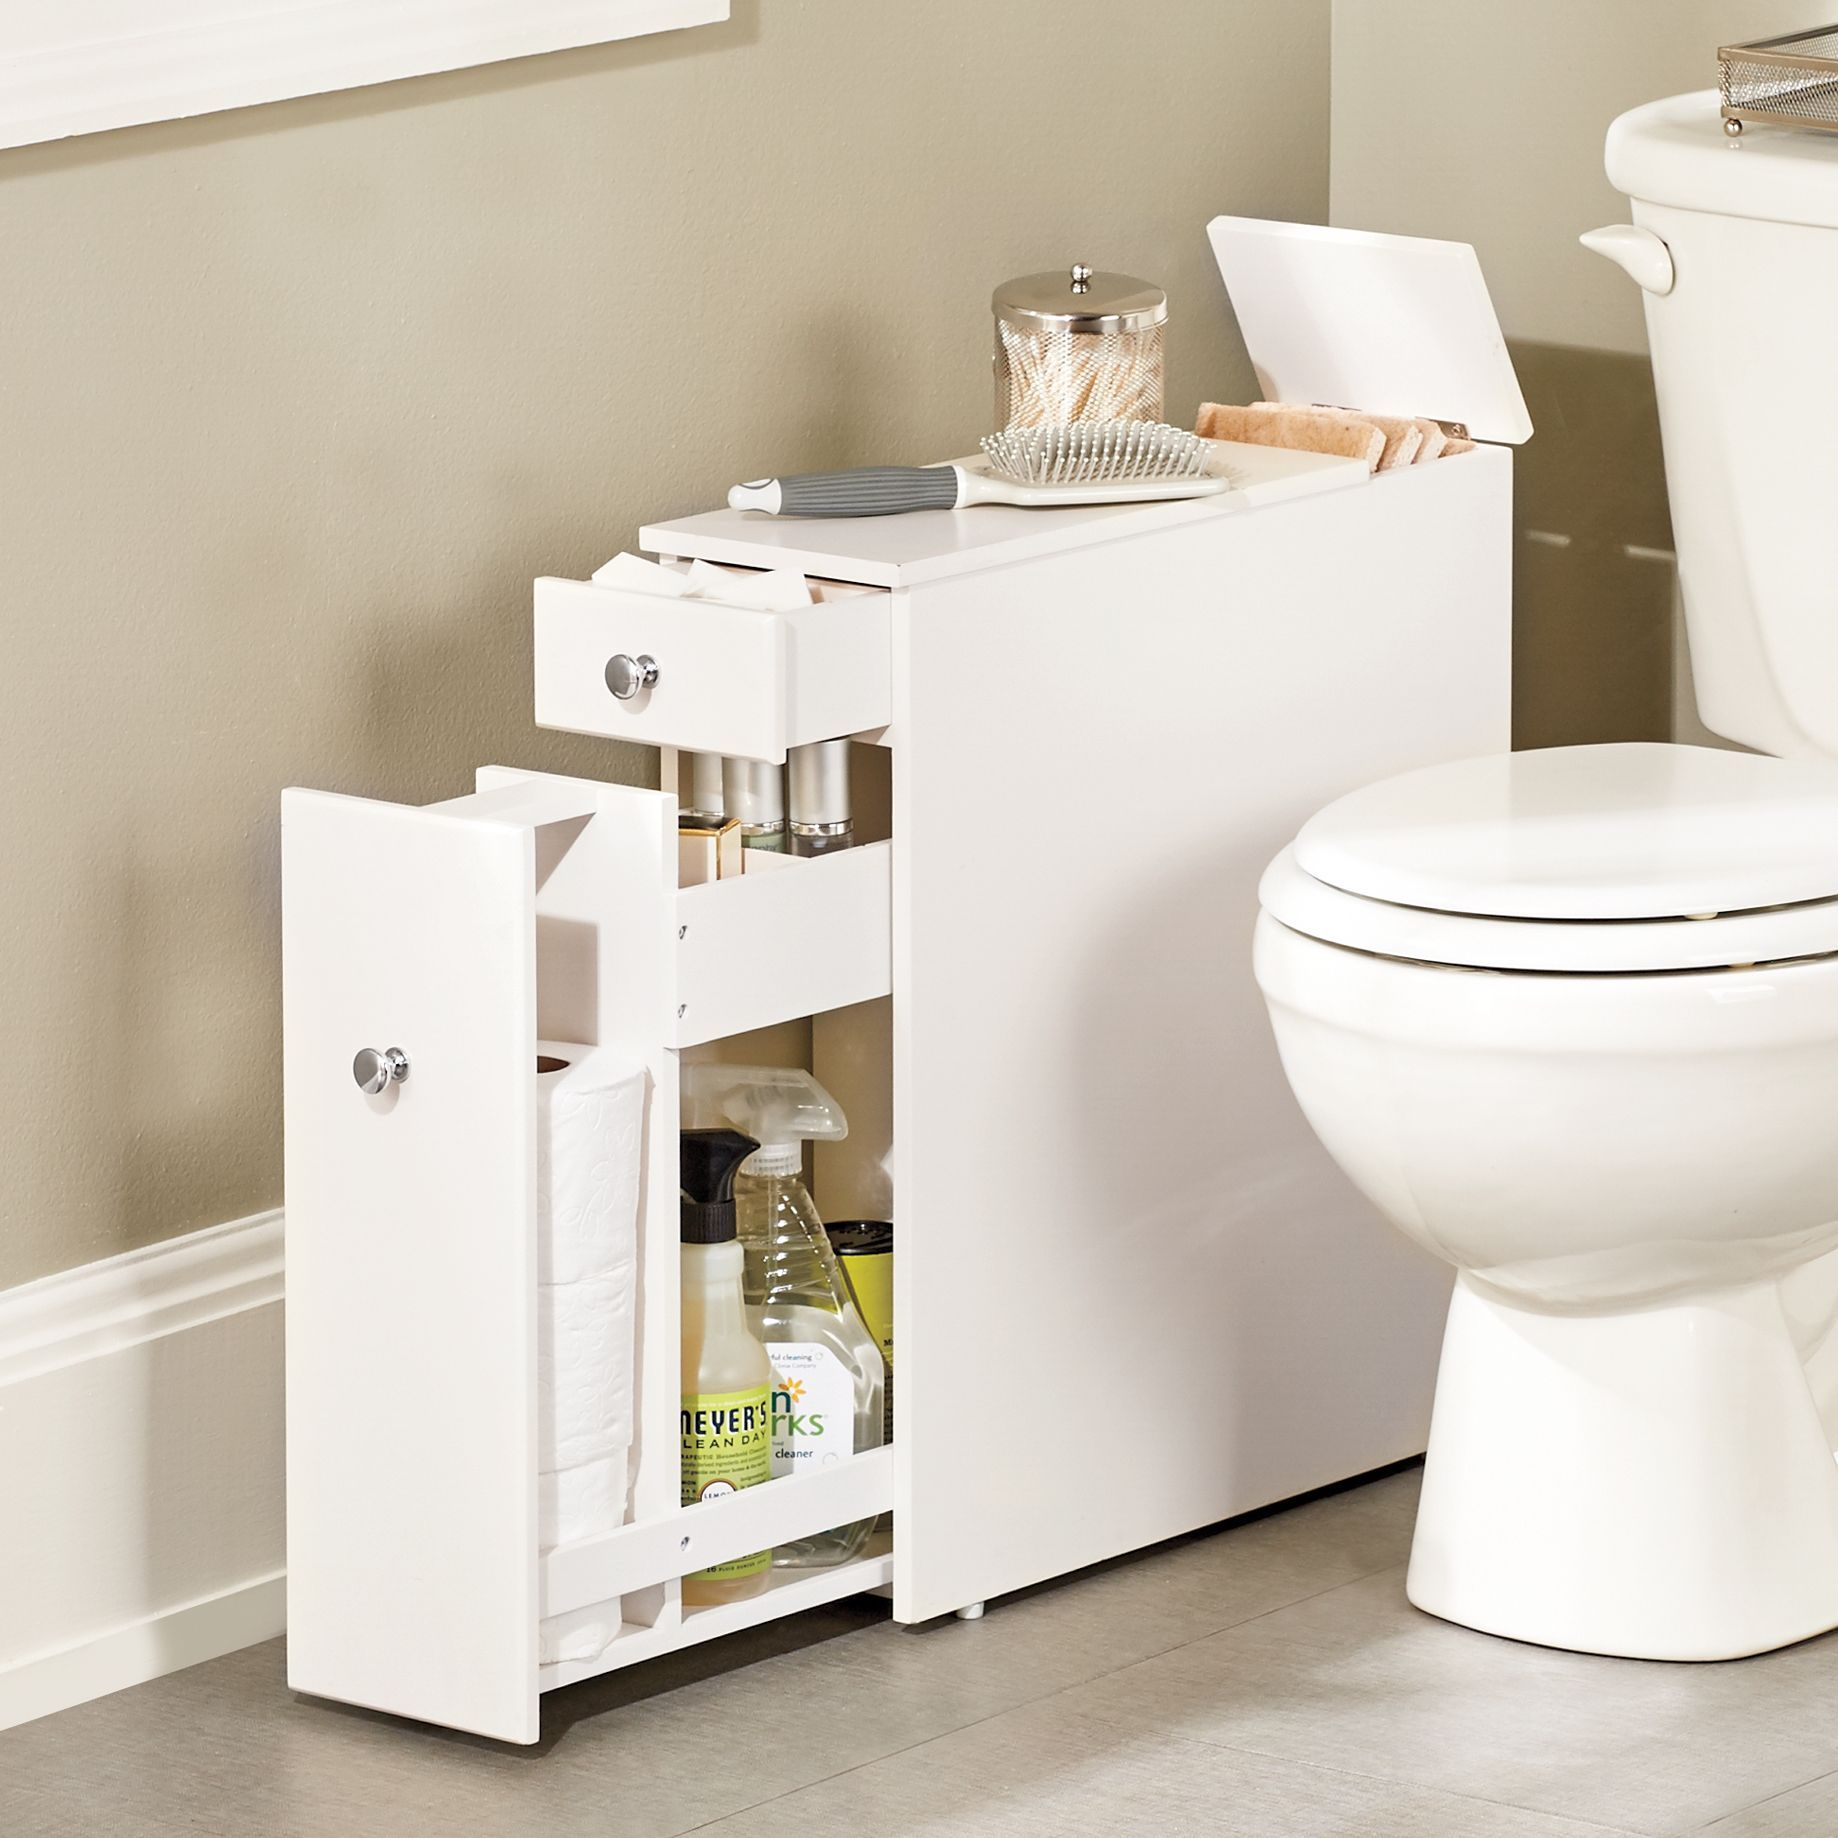 Slim Bathroom Cabinet Fits In That Un-used Space Between The Toilet And The Wall. Now That's A